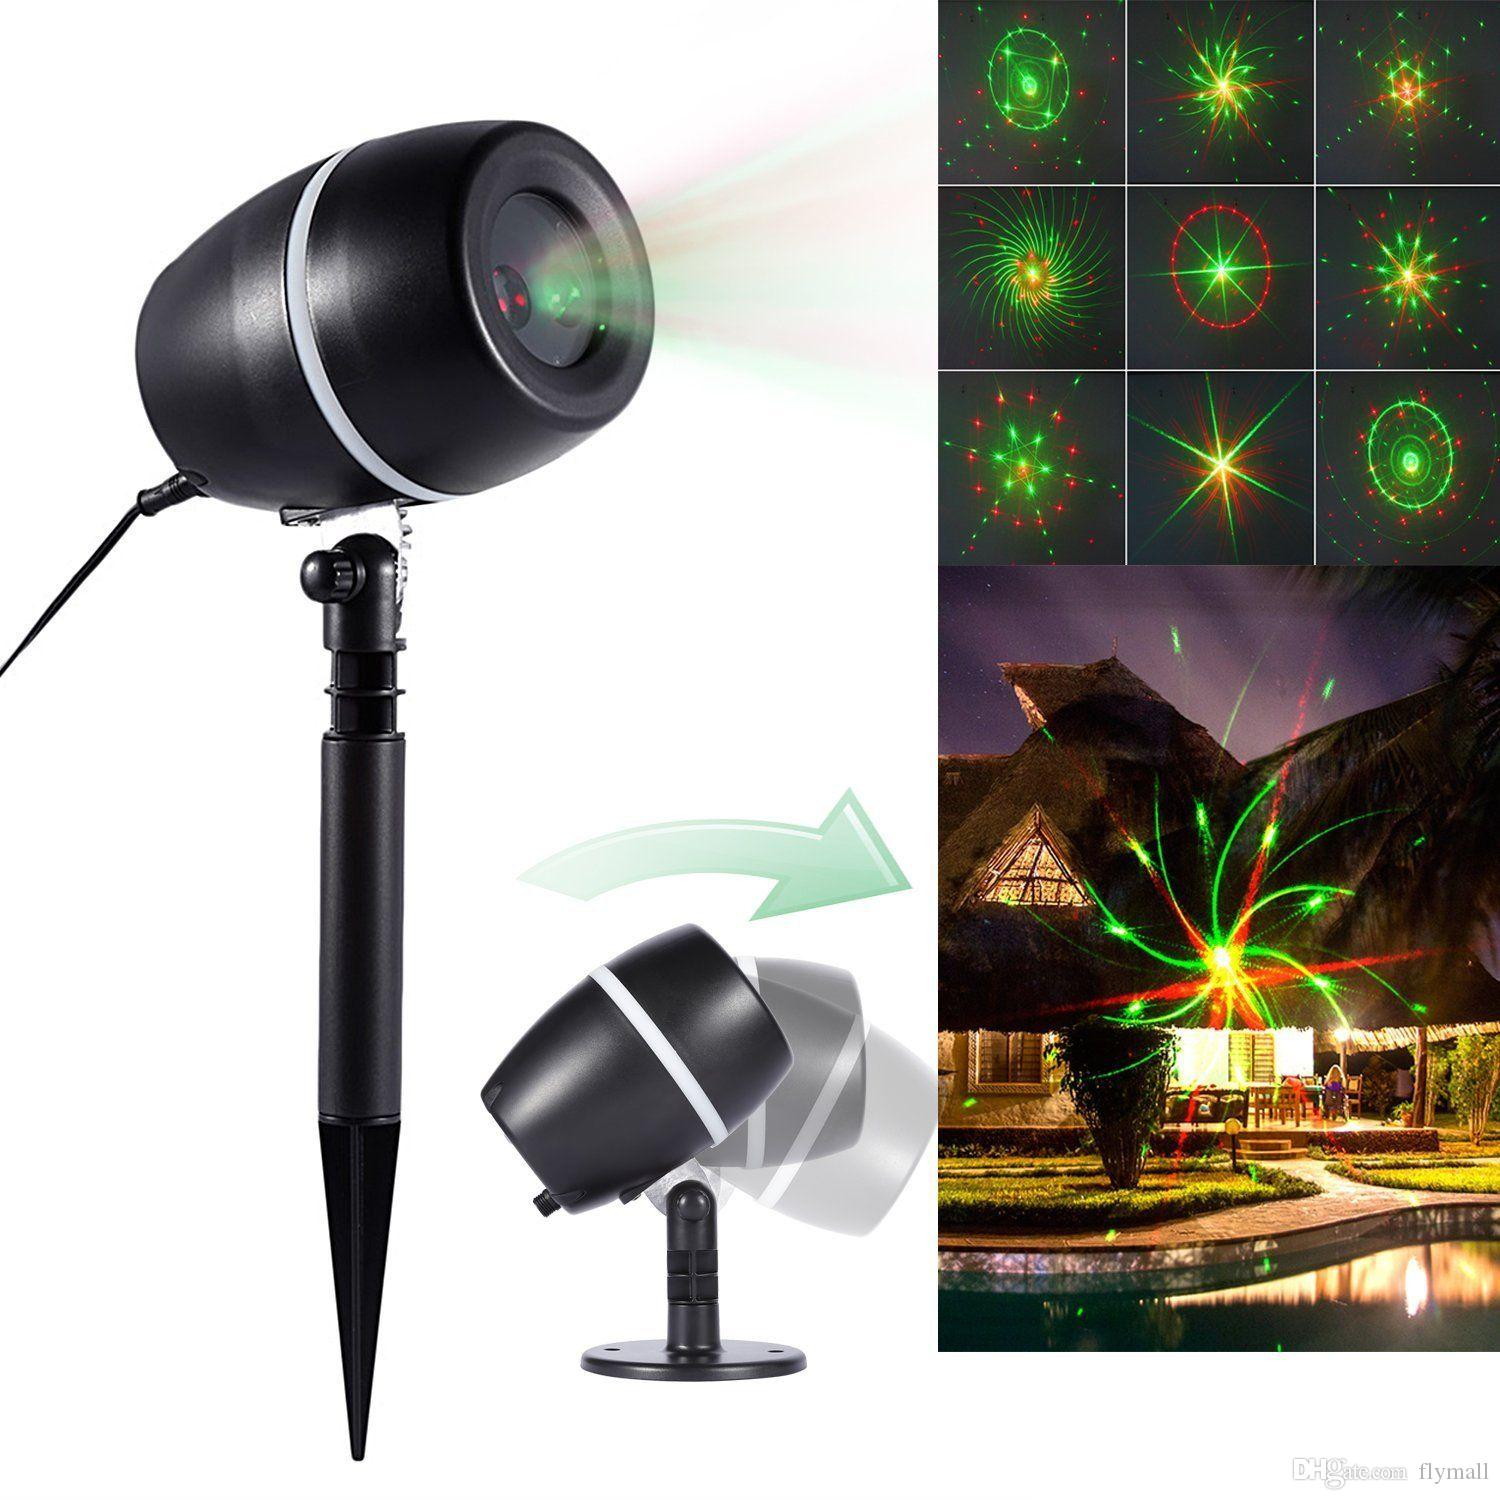 Redgreen projector lights star laser landscape light moving redgreen projector lights star laser landscape light moving galaxy show spotlight outdoor decoration for christmas party stage decoration disco light laser mozeypictures Gallery